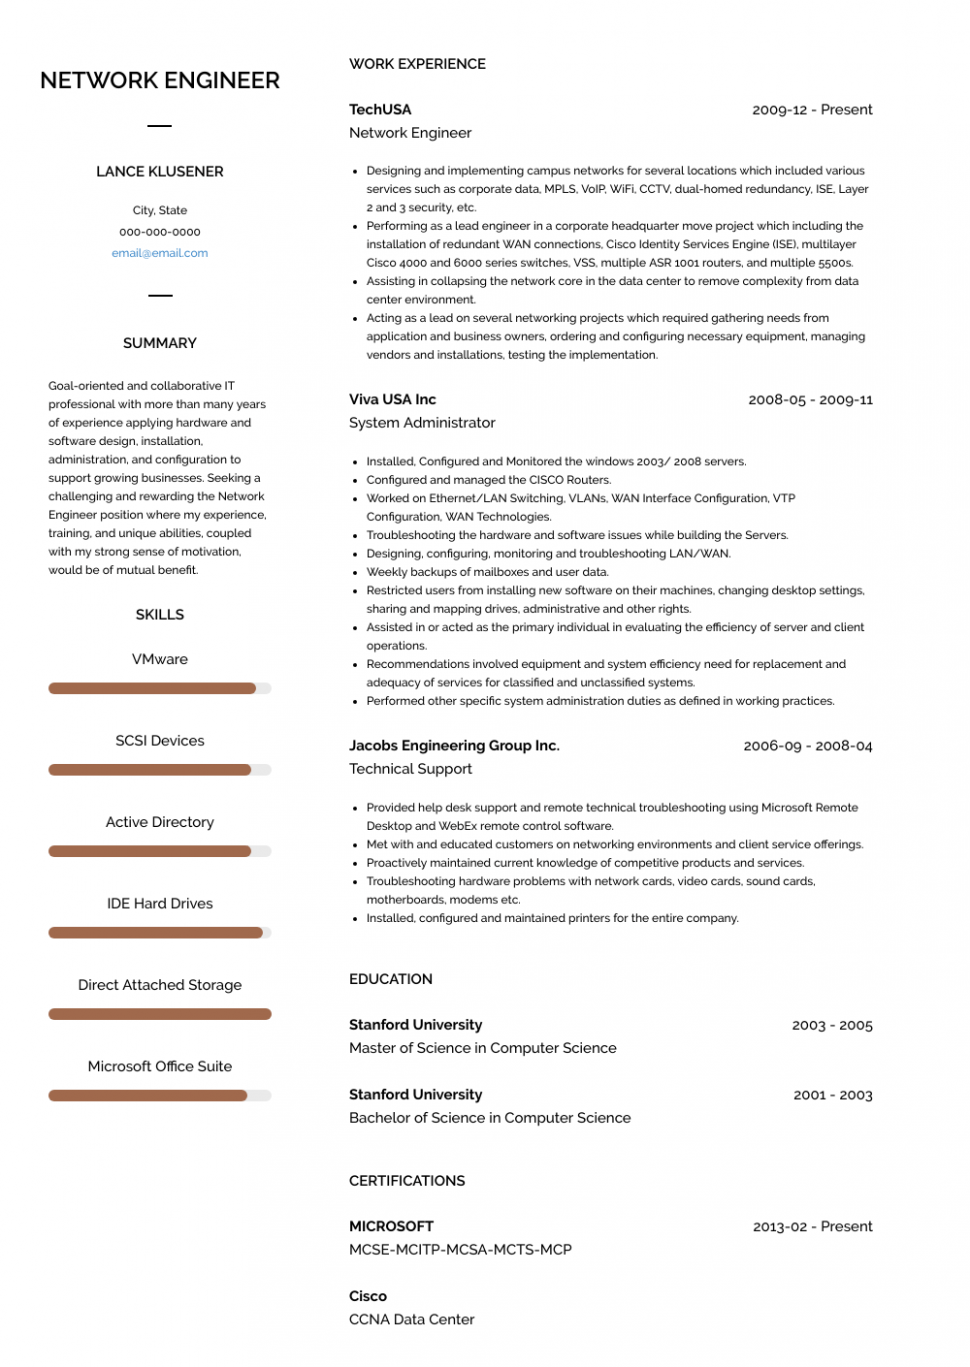 15 Engineer Resume How Many Pages